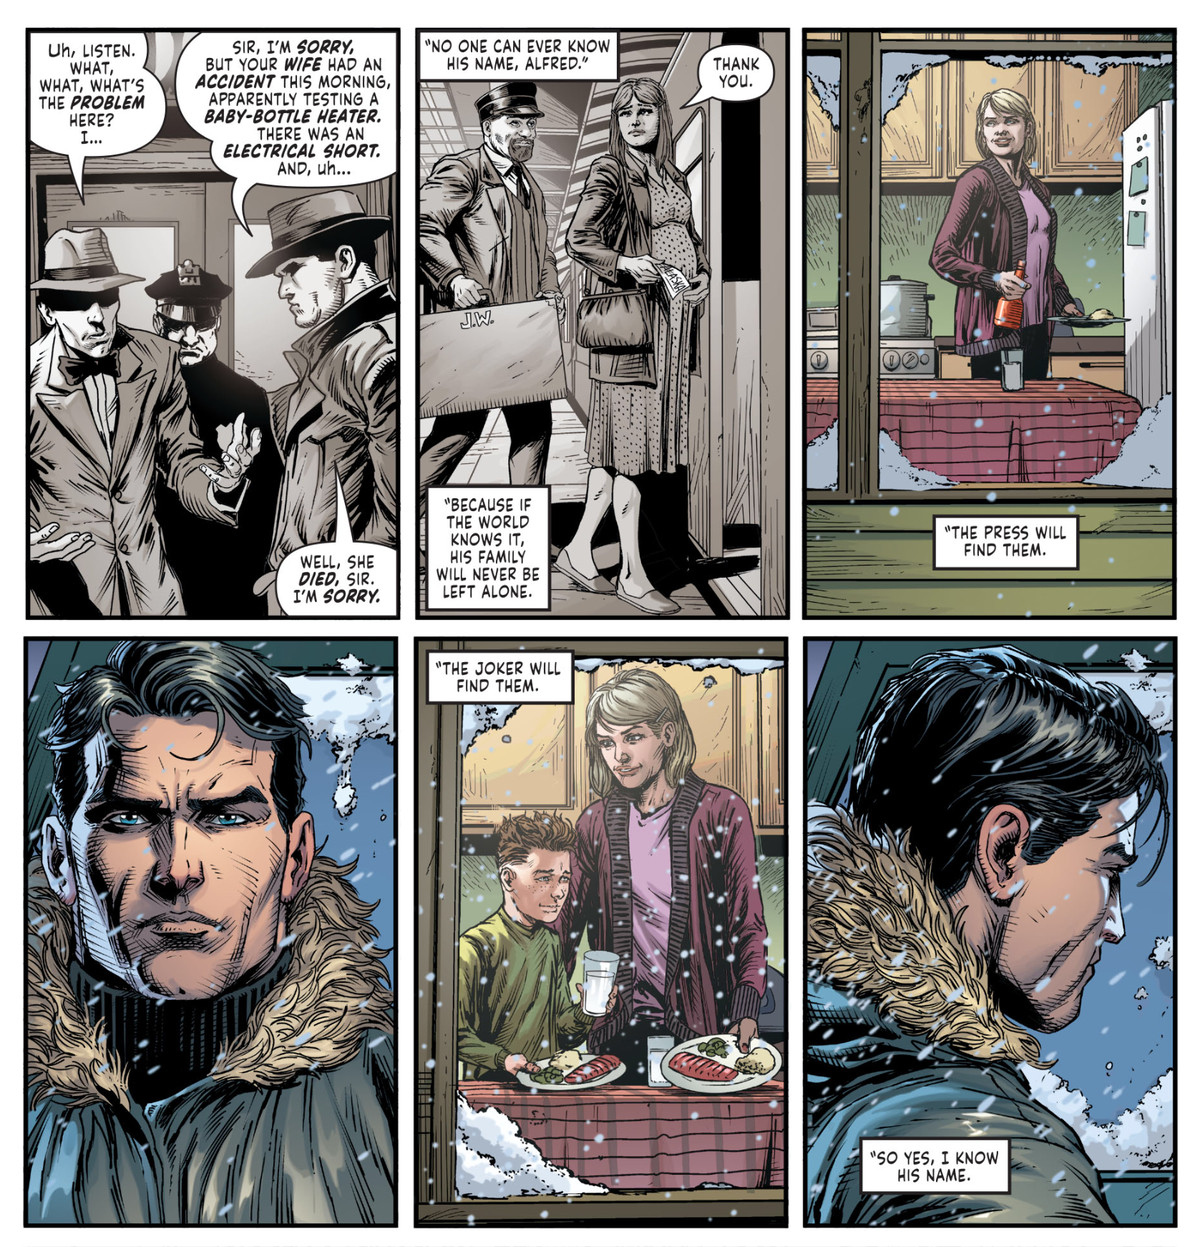 Police officers in the past help fake the Joker's wife's death, while in the present, Bruce Wayne looks in on her and her son in the present, in Three Jokers #3, DC Comics (2020).